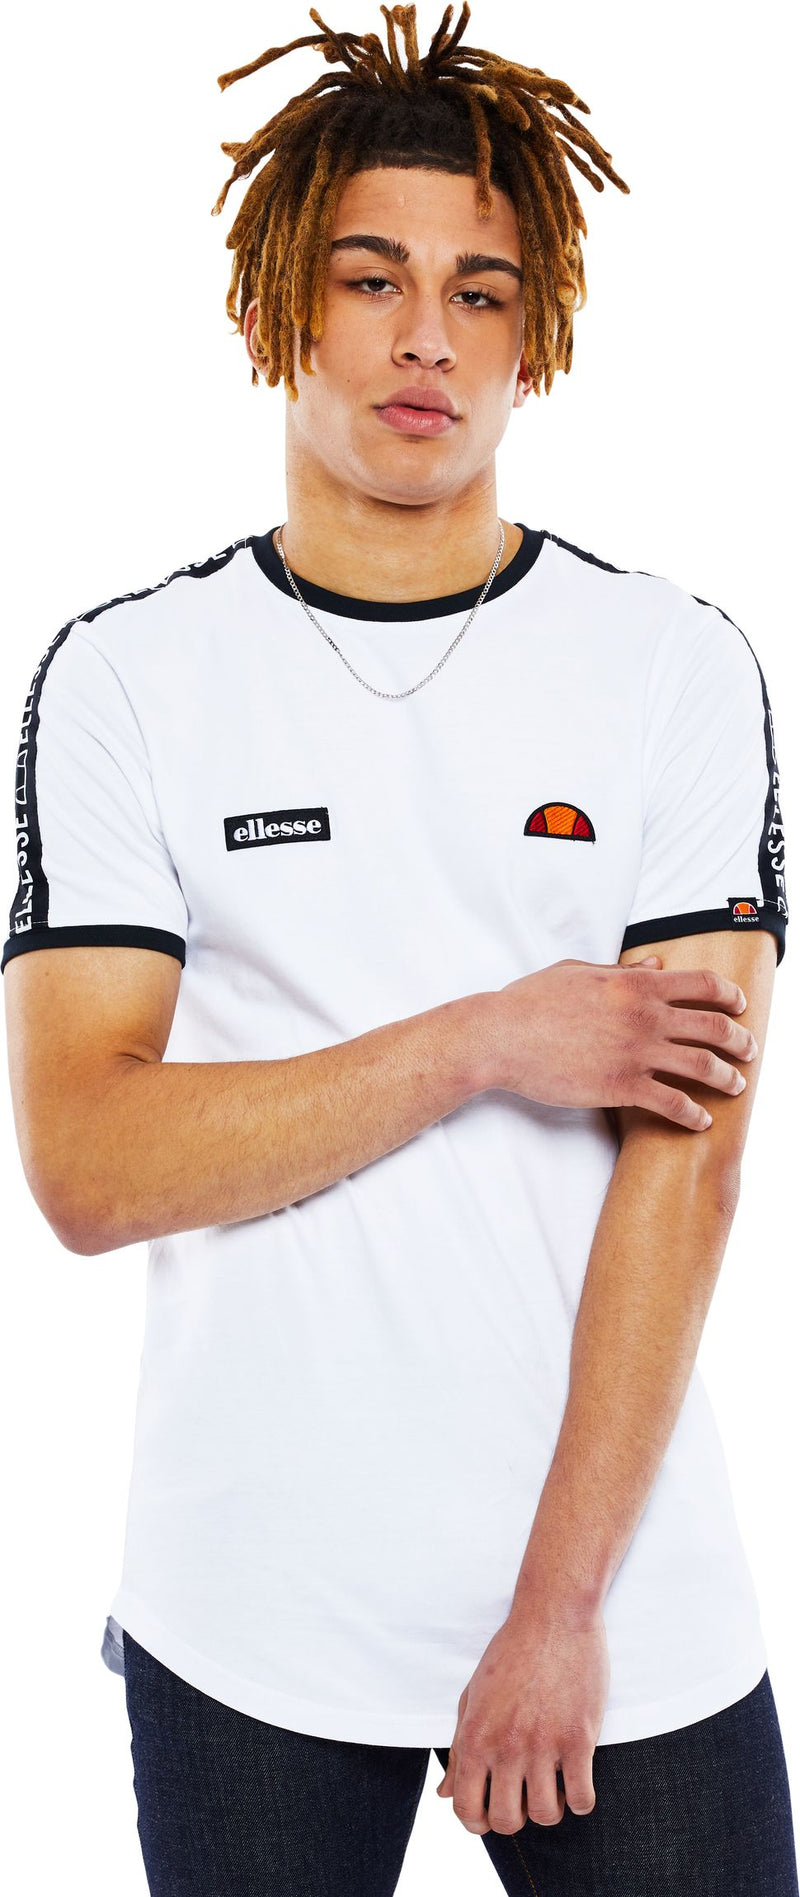 Ellesse Fede Taped T-Shirt White